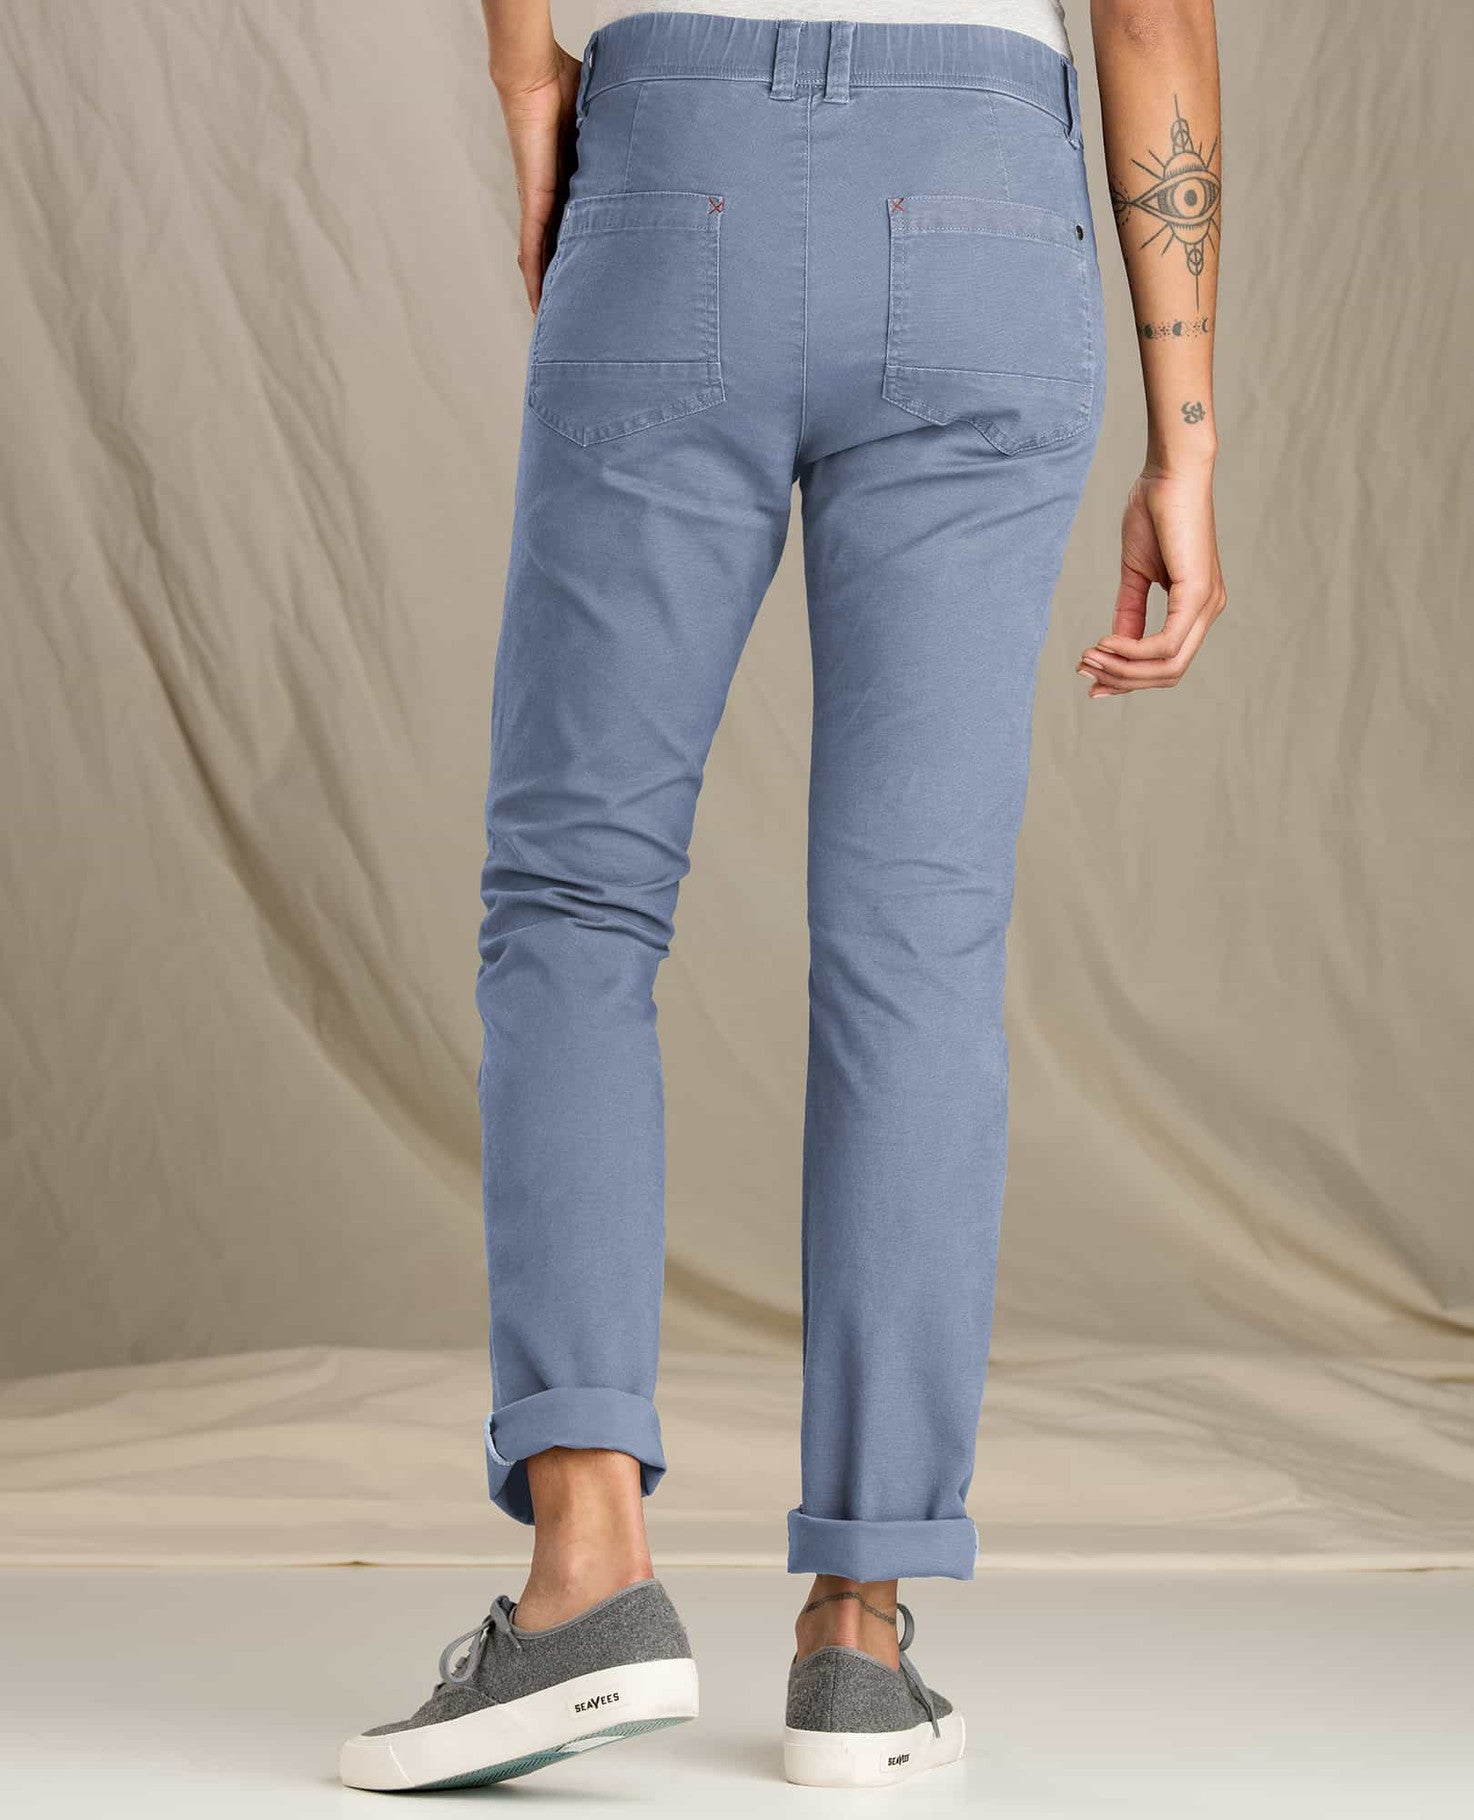 TOAD earthworks pant